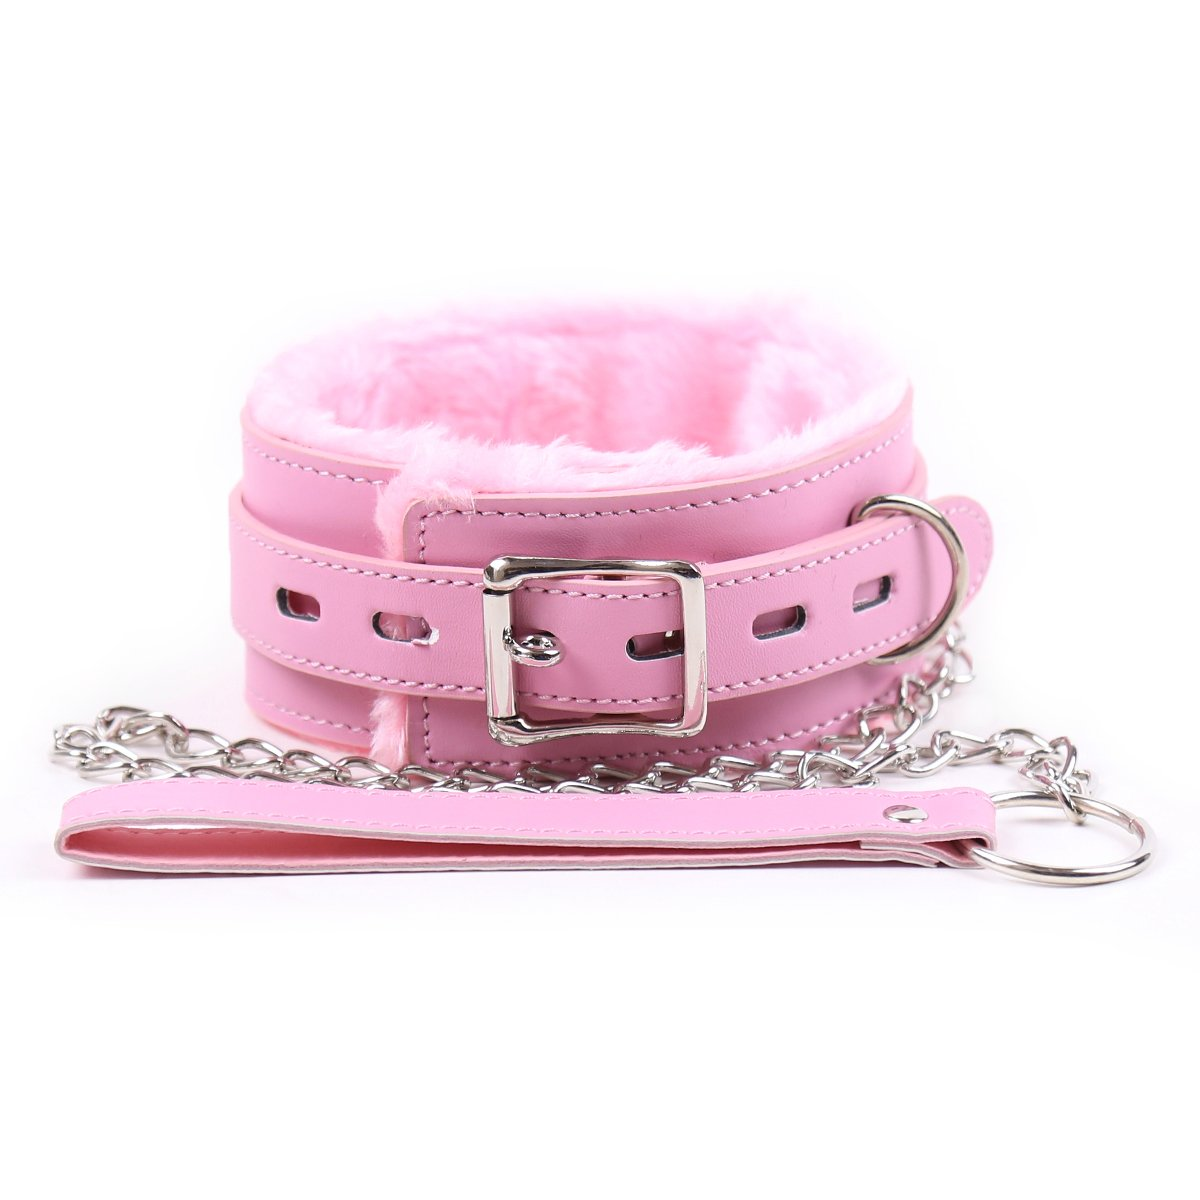 DERENHER Adjustable Faux Fur Lined Choker Pink Pvc Leather Neck Collar and Leash Kit (Pink) by DERENHER (Image #1)